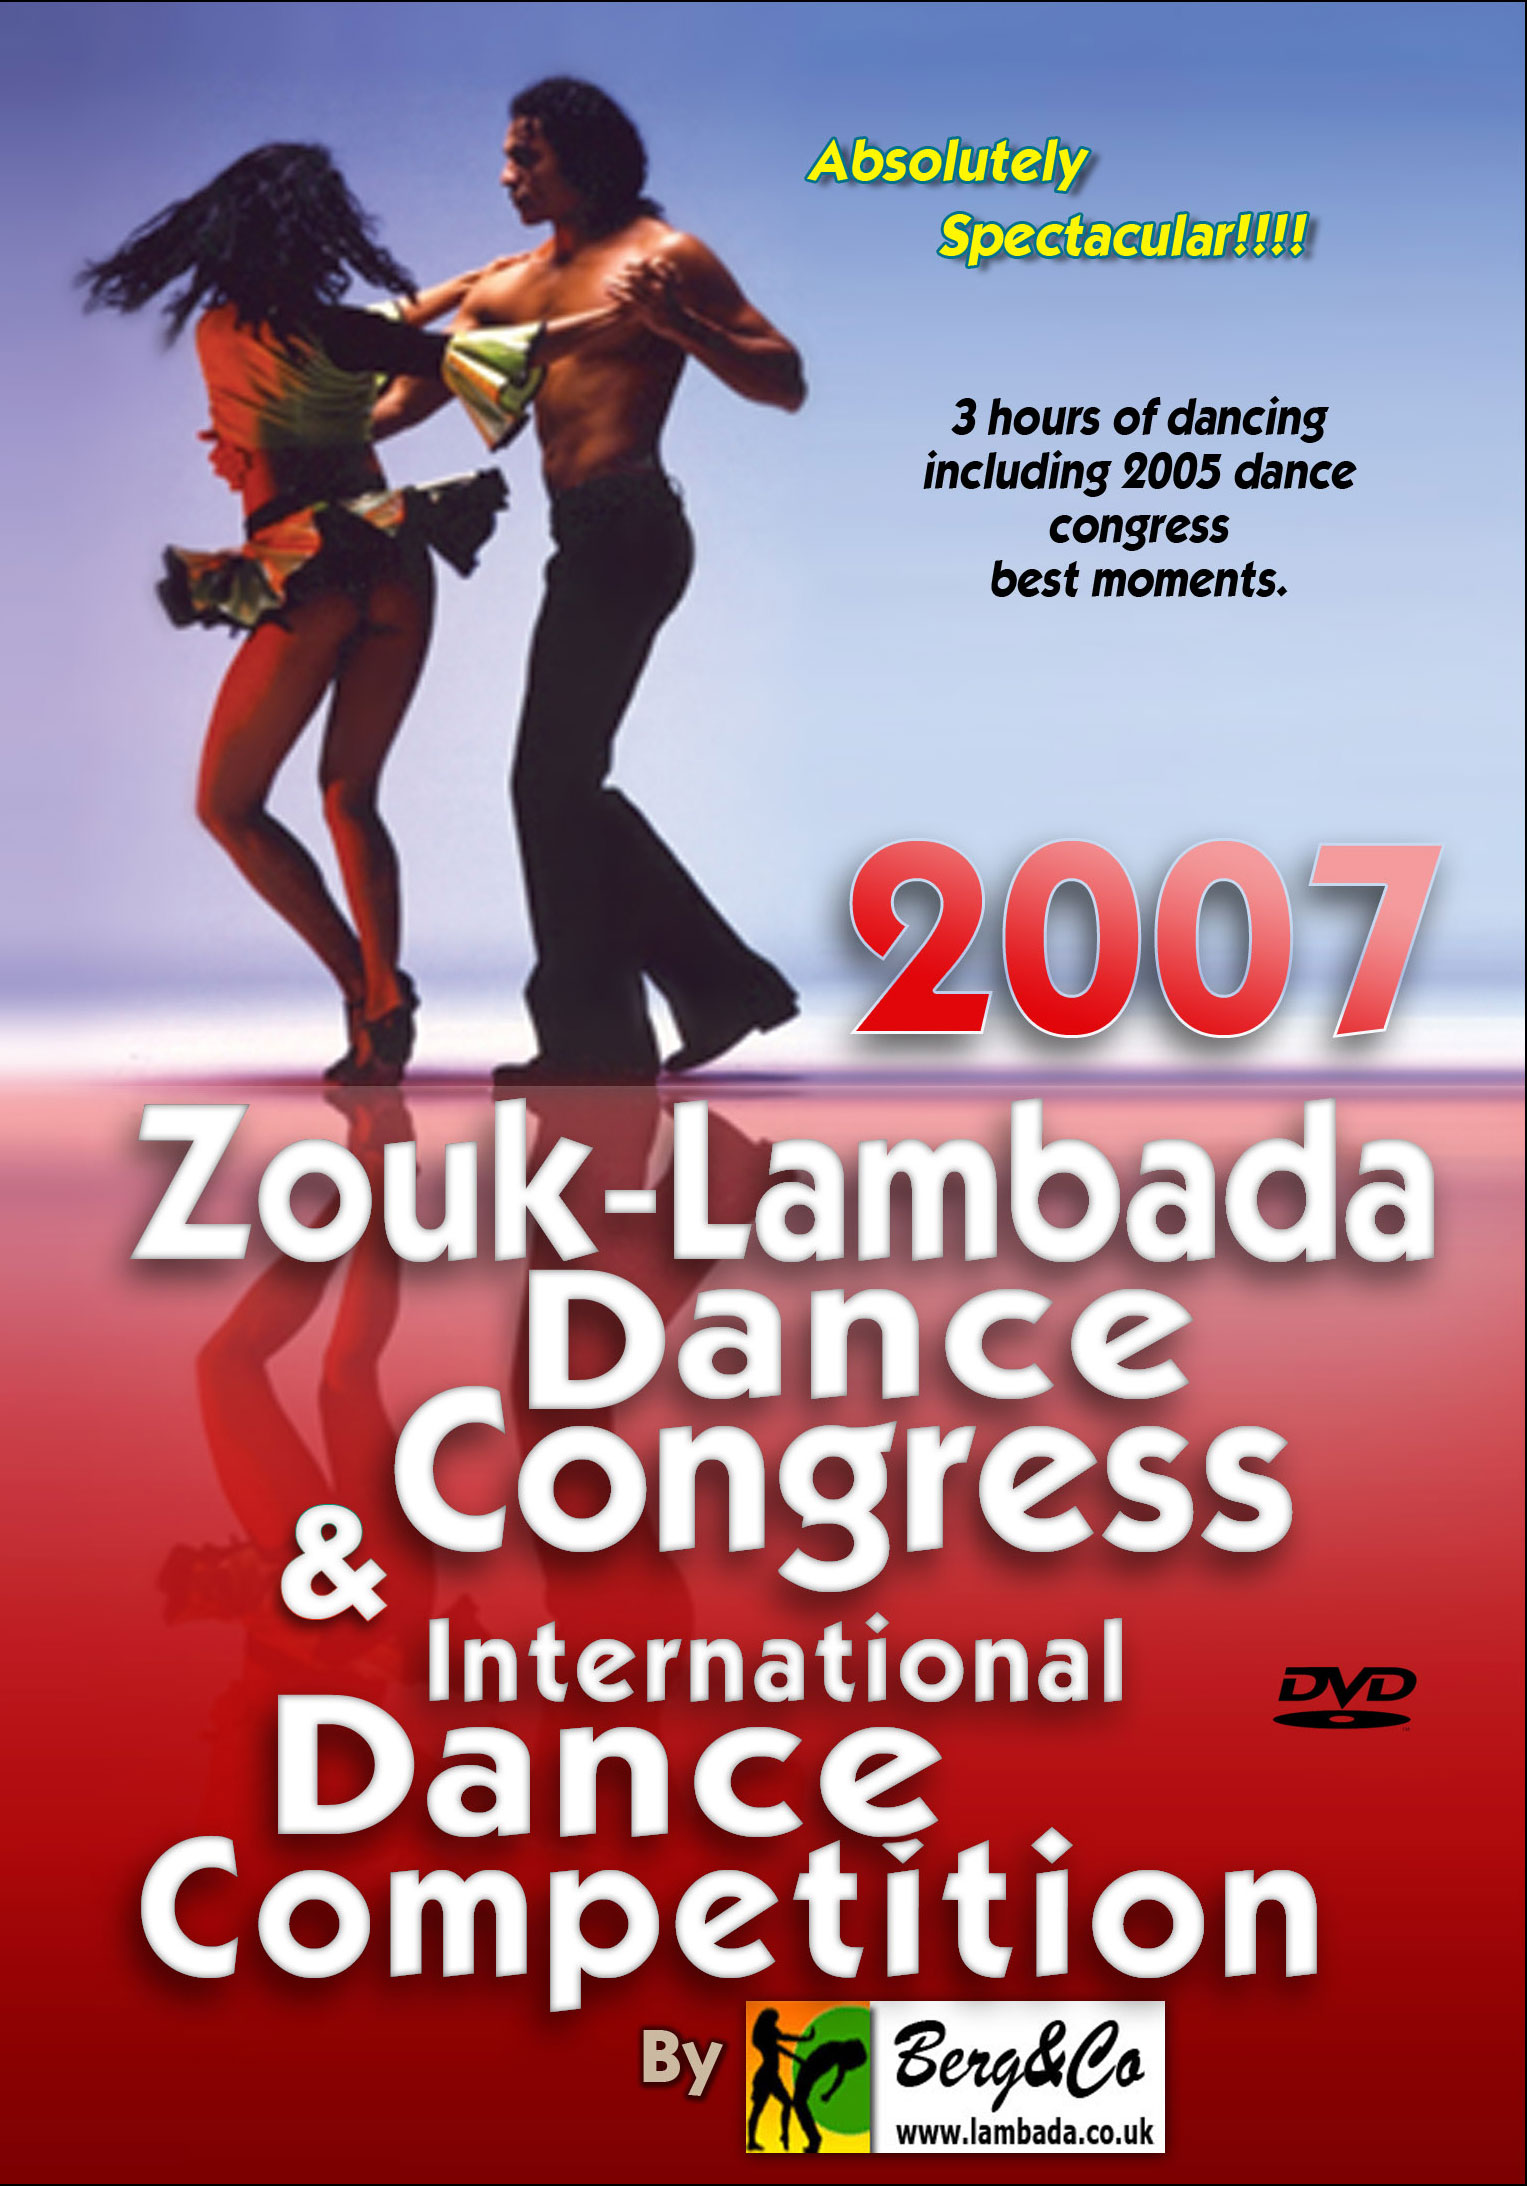 Lambada Congress 2007 DVD cover